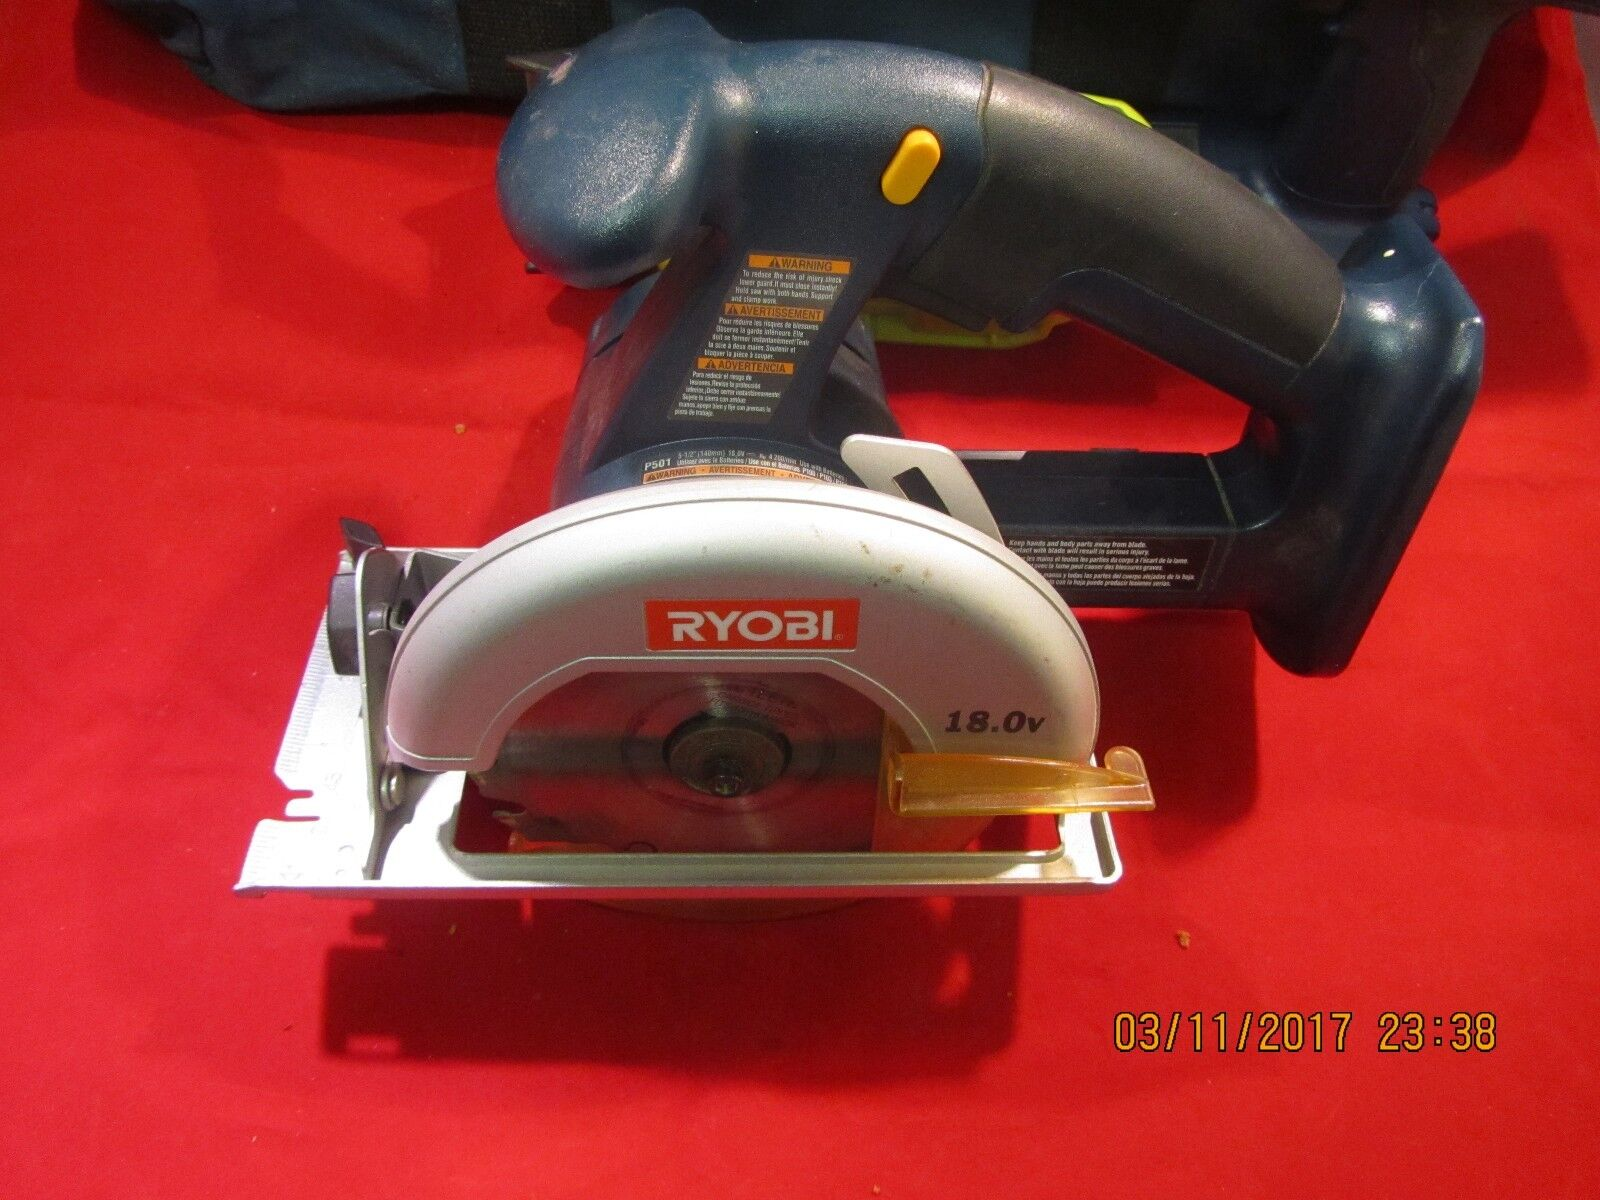 Ryobi (One+) Tool Tool Tool lot, Saw, Drill Driver, Charger, and